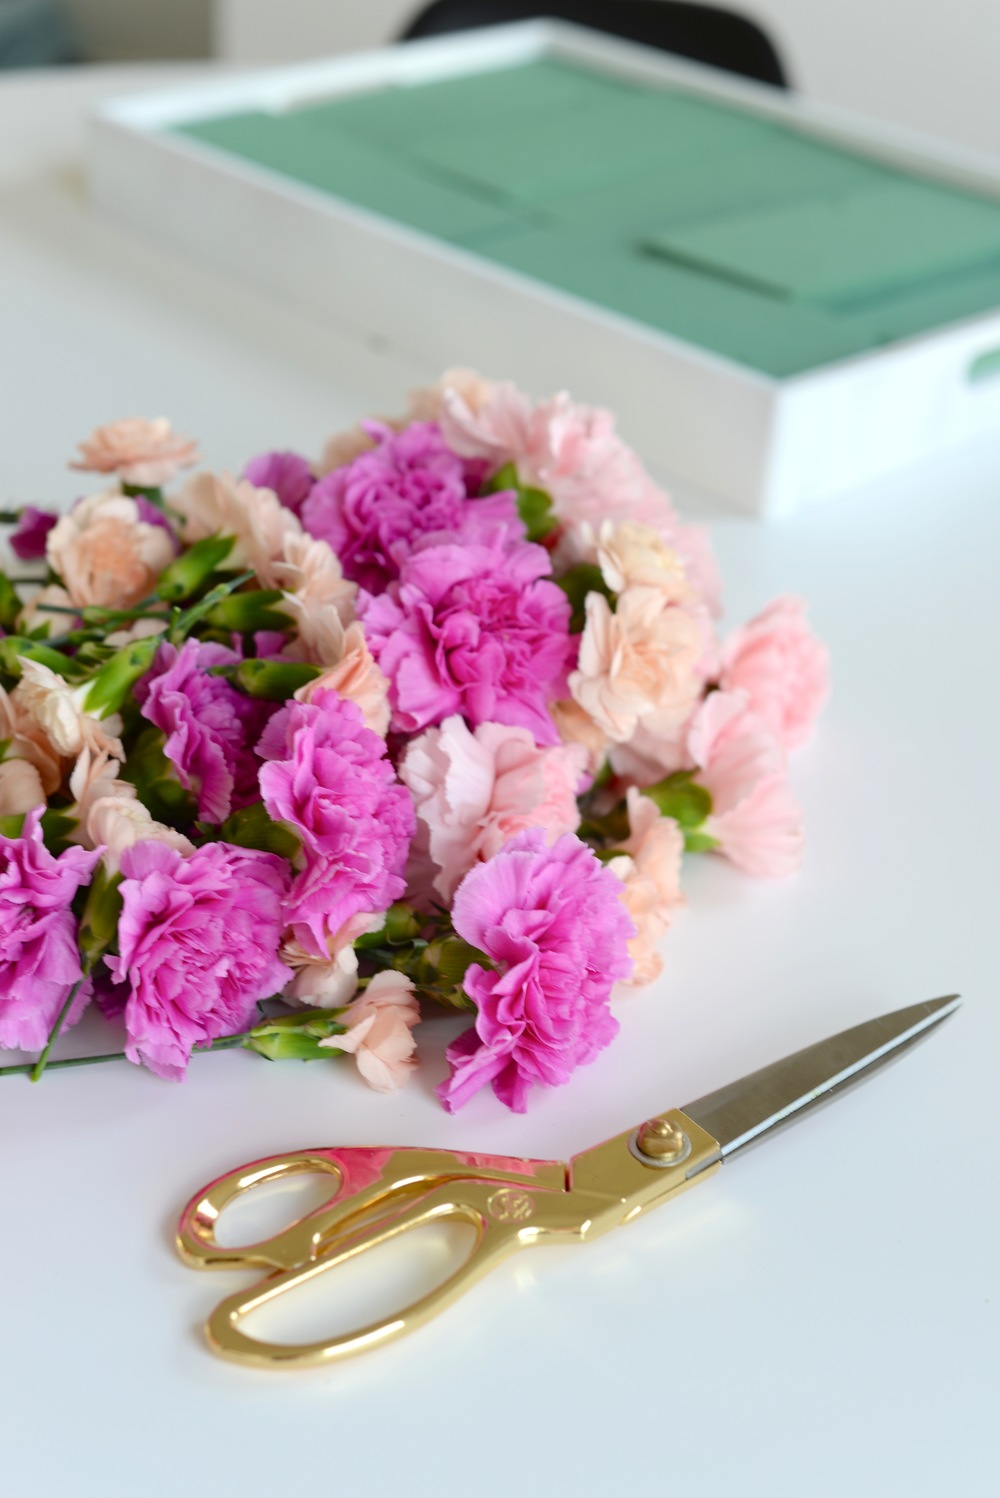 Floral centerpiece DIY